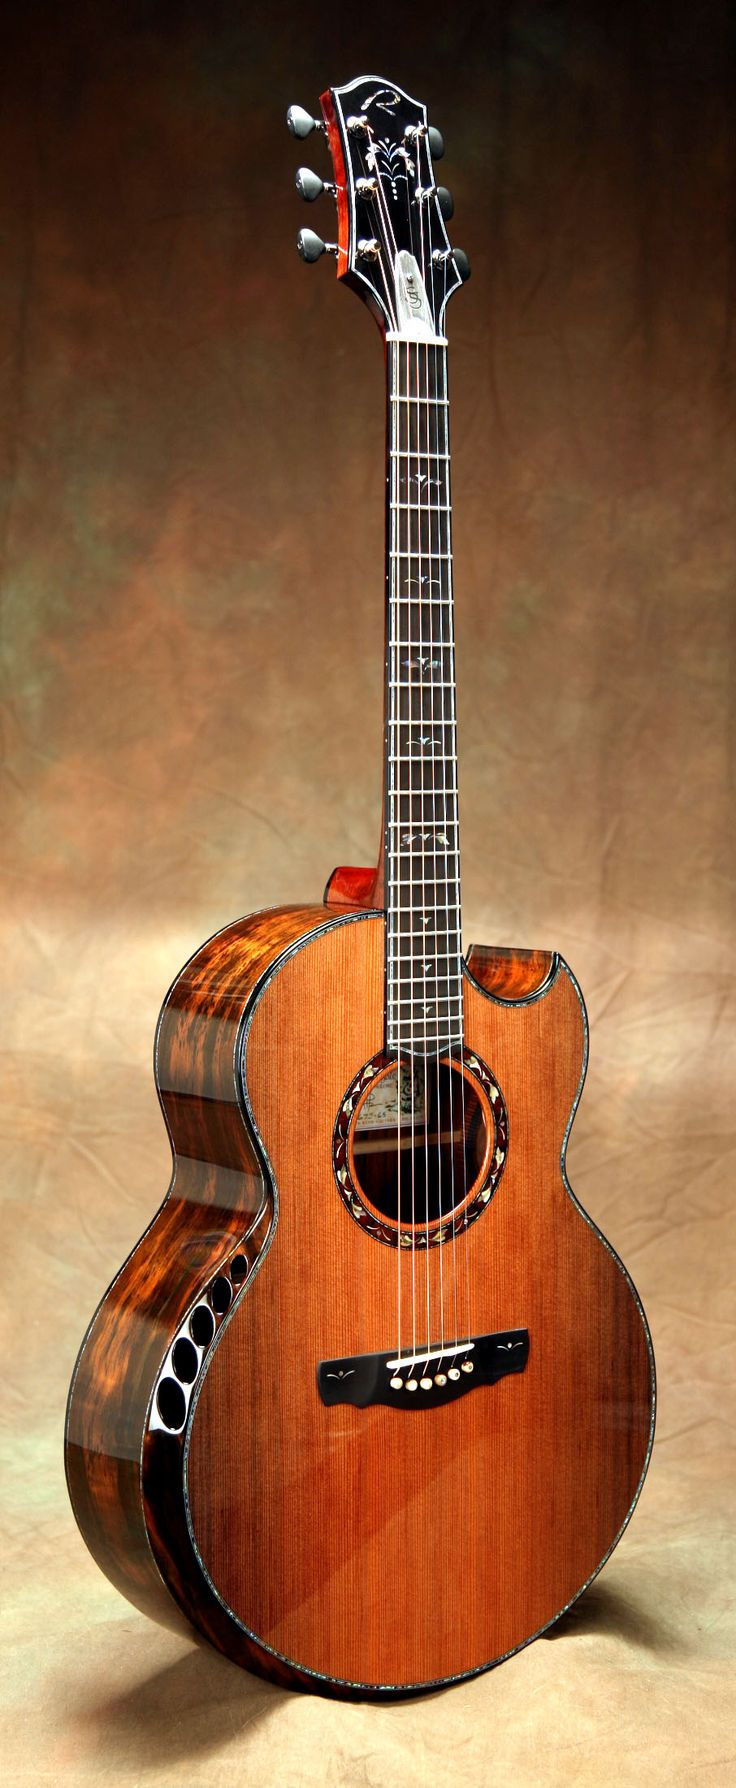 678 Best Guitars Images On Pinterest Acoustic Guitar